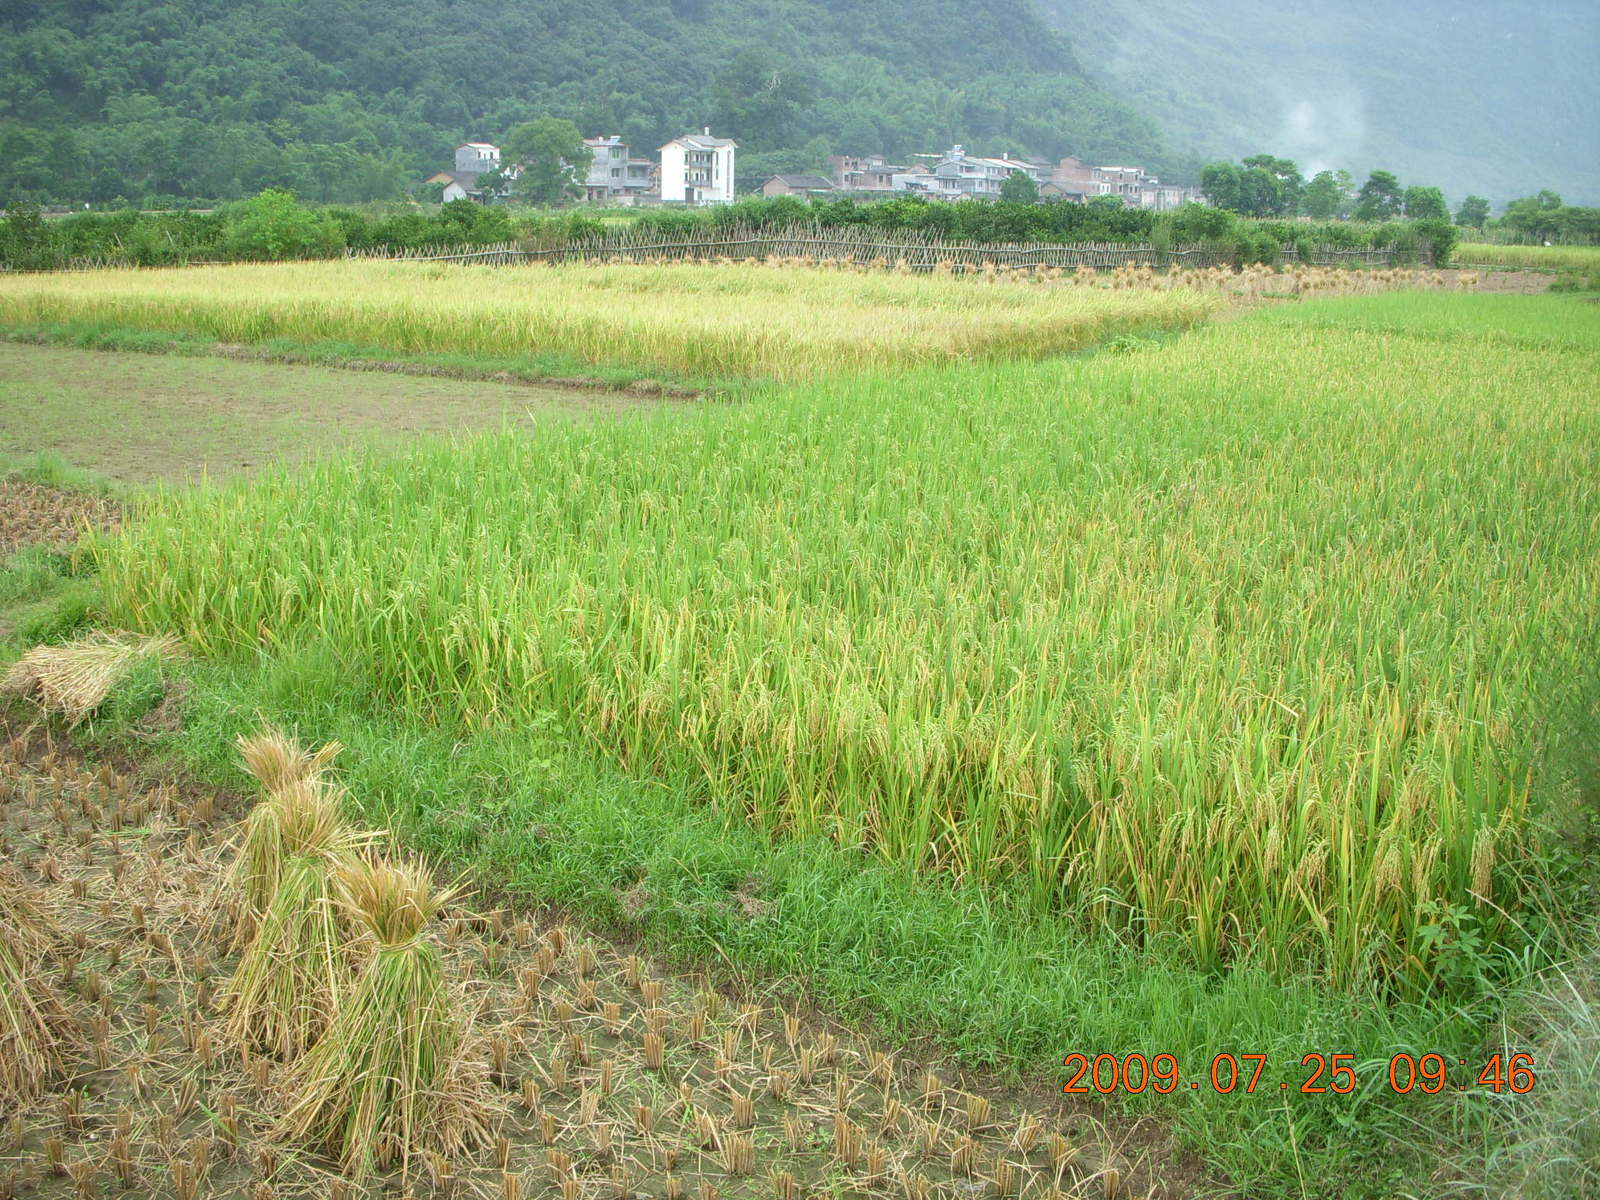 China eclipse - Yangshuo bicycle ride - walk to farm village - rice